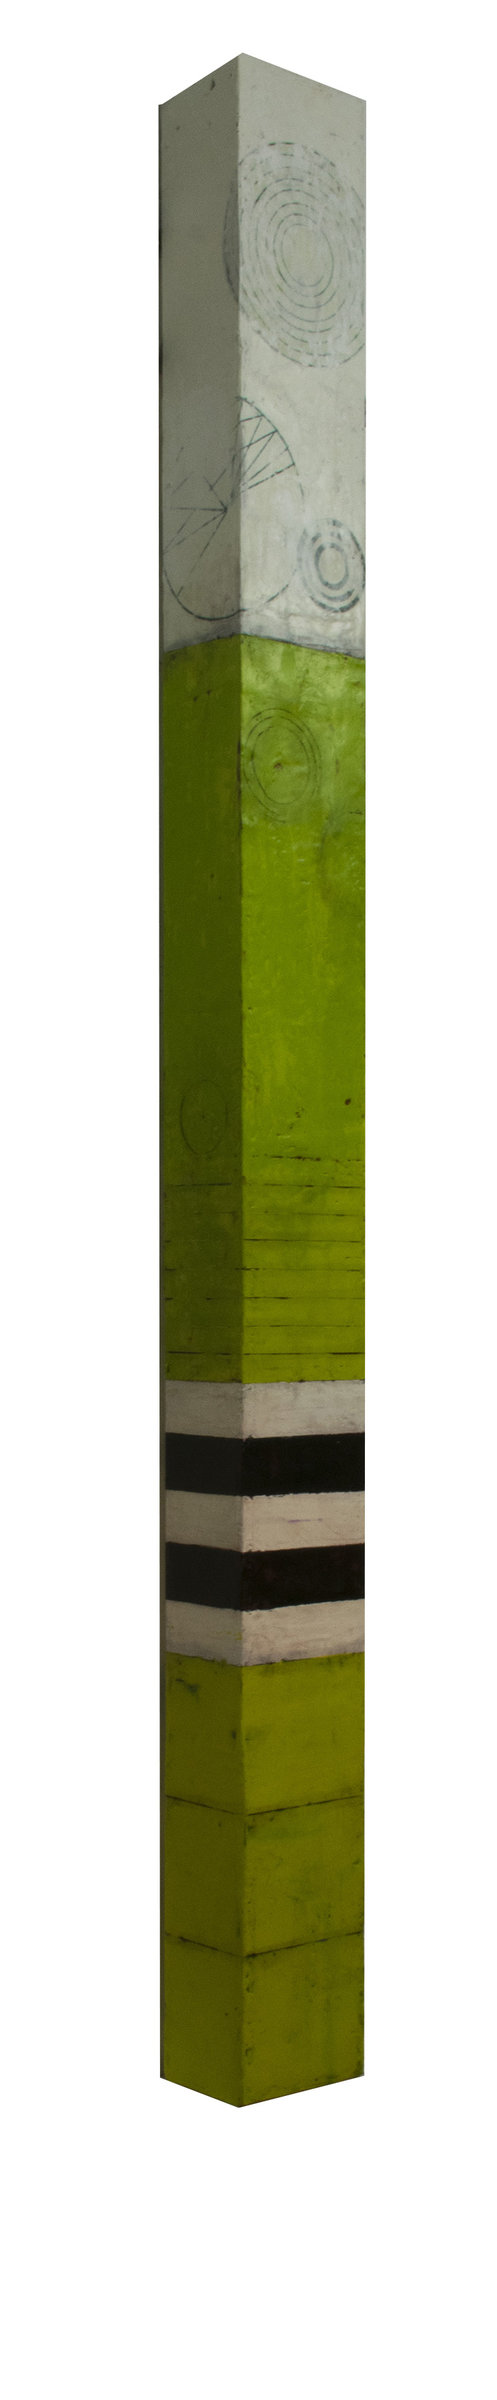 Chartreuse Wall Column